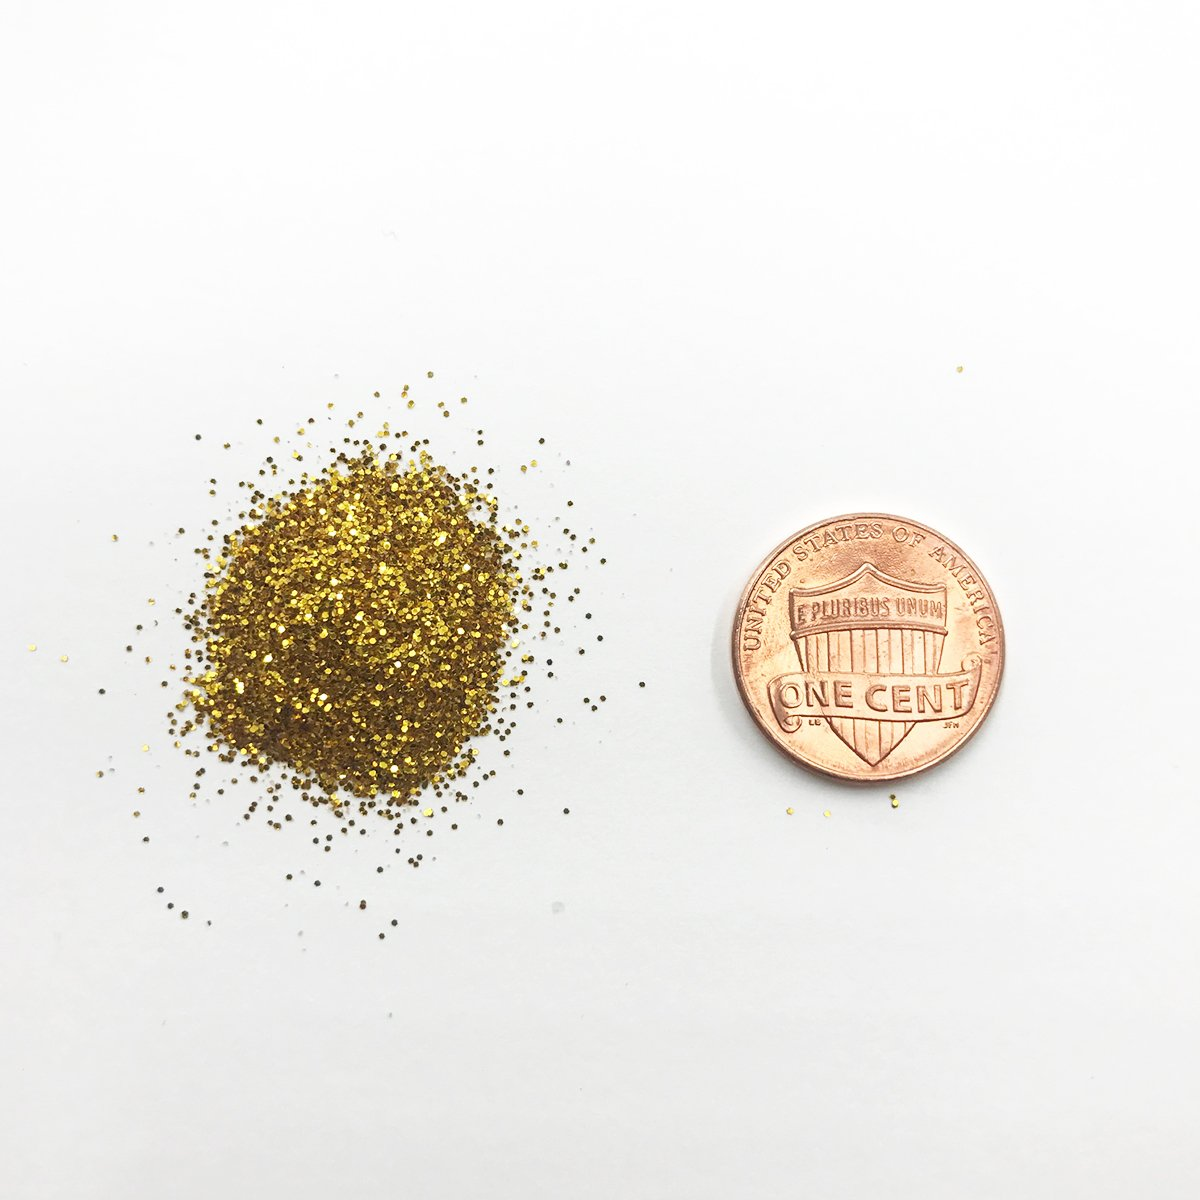 Craft and Party, 1 pound bottled Craft Glitter for Craft and Decoration (Gold)